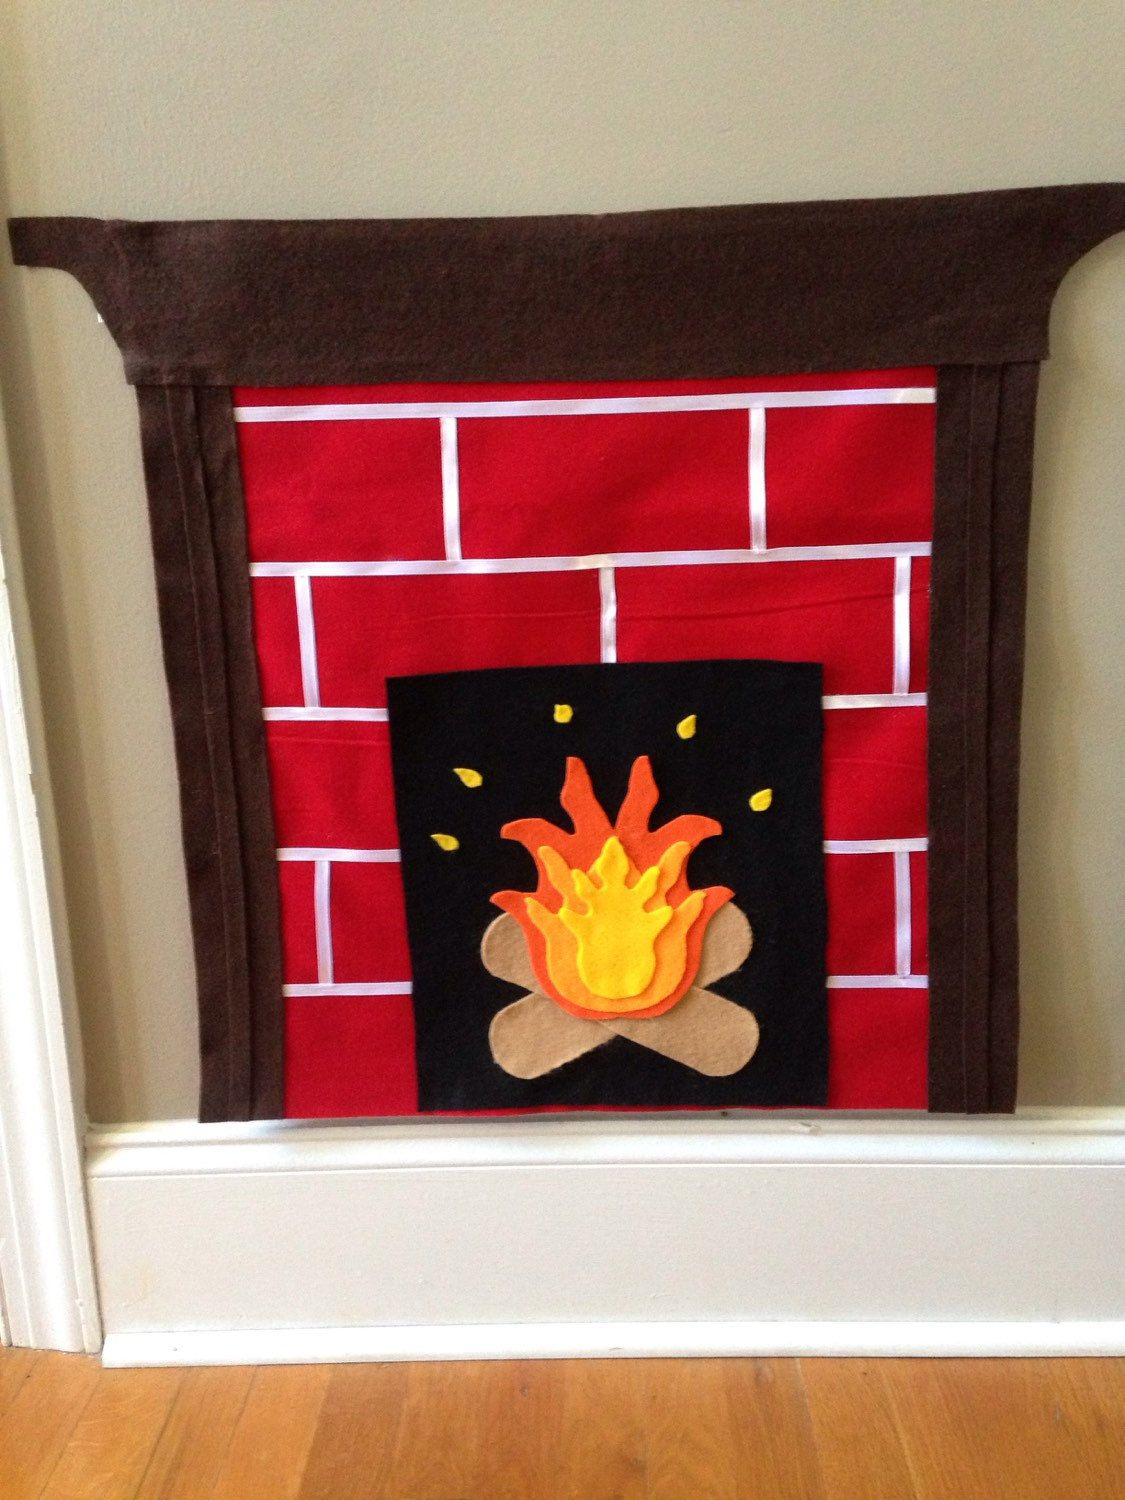 Felt Fireplace Christmas Tree Fireplace Felt Christmas